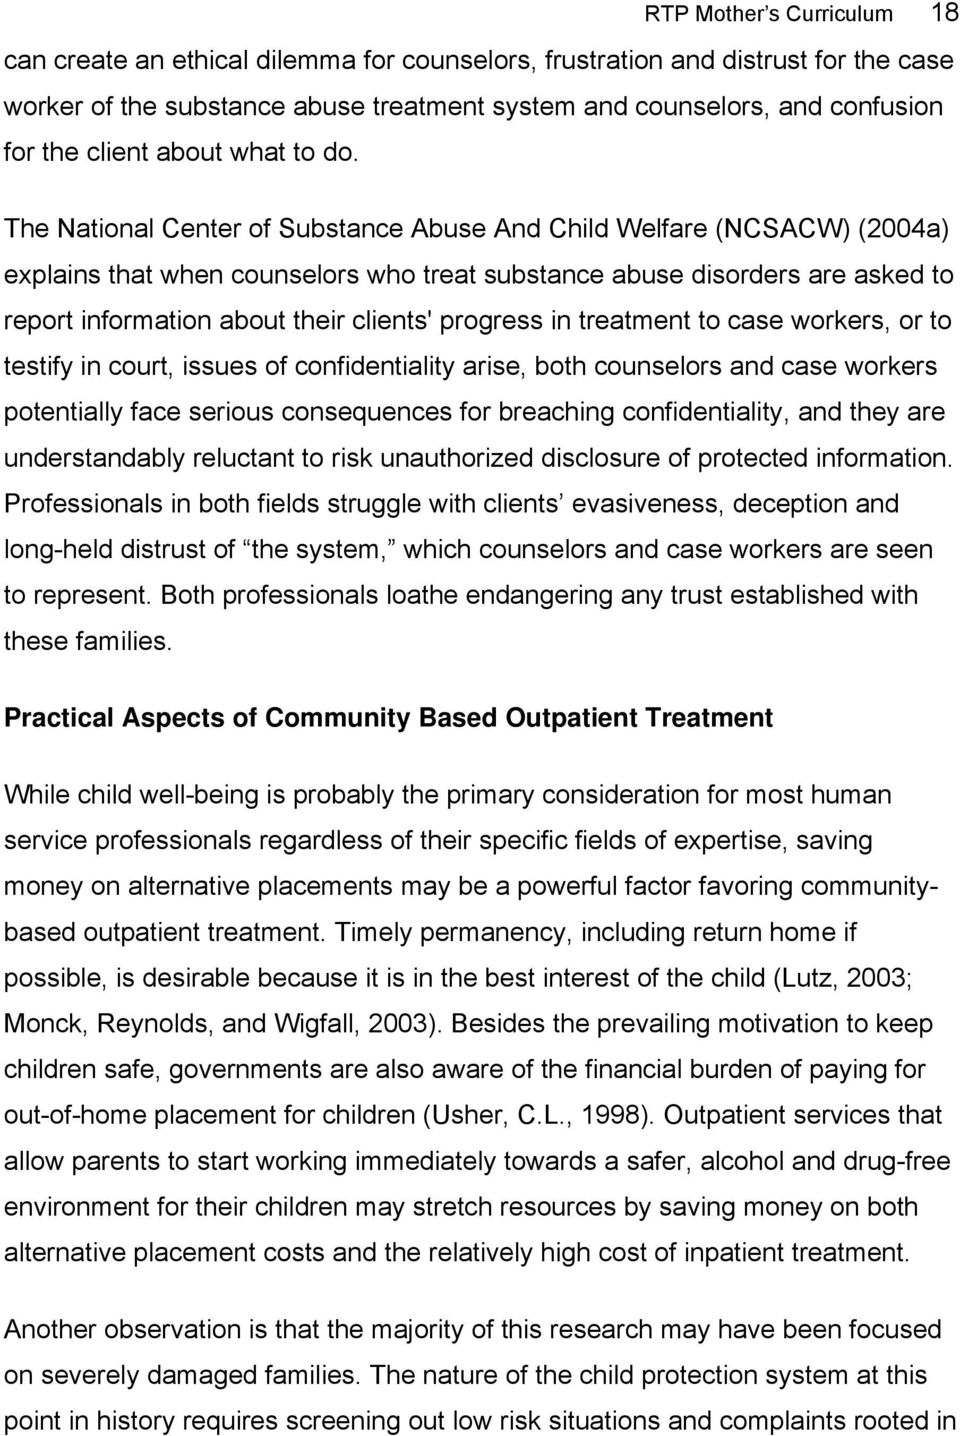 The National Center of Substance Abuse And Child Welfare (NCSACW) (2004a) explains that when counselors who treat substance abuse disorders are asked to report information about their clients'